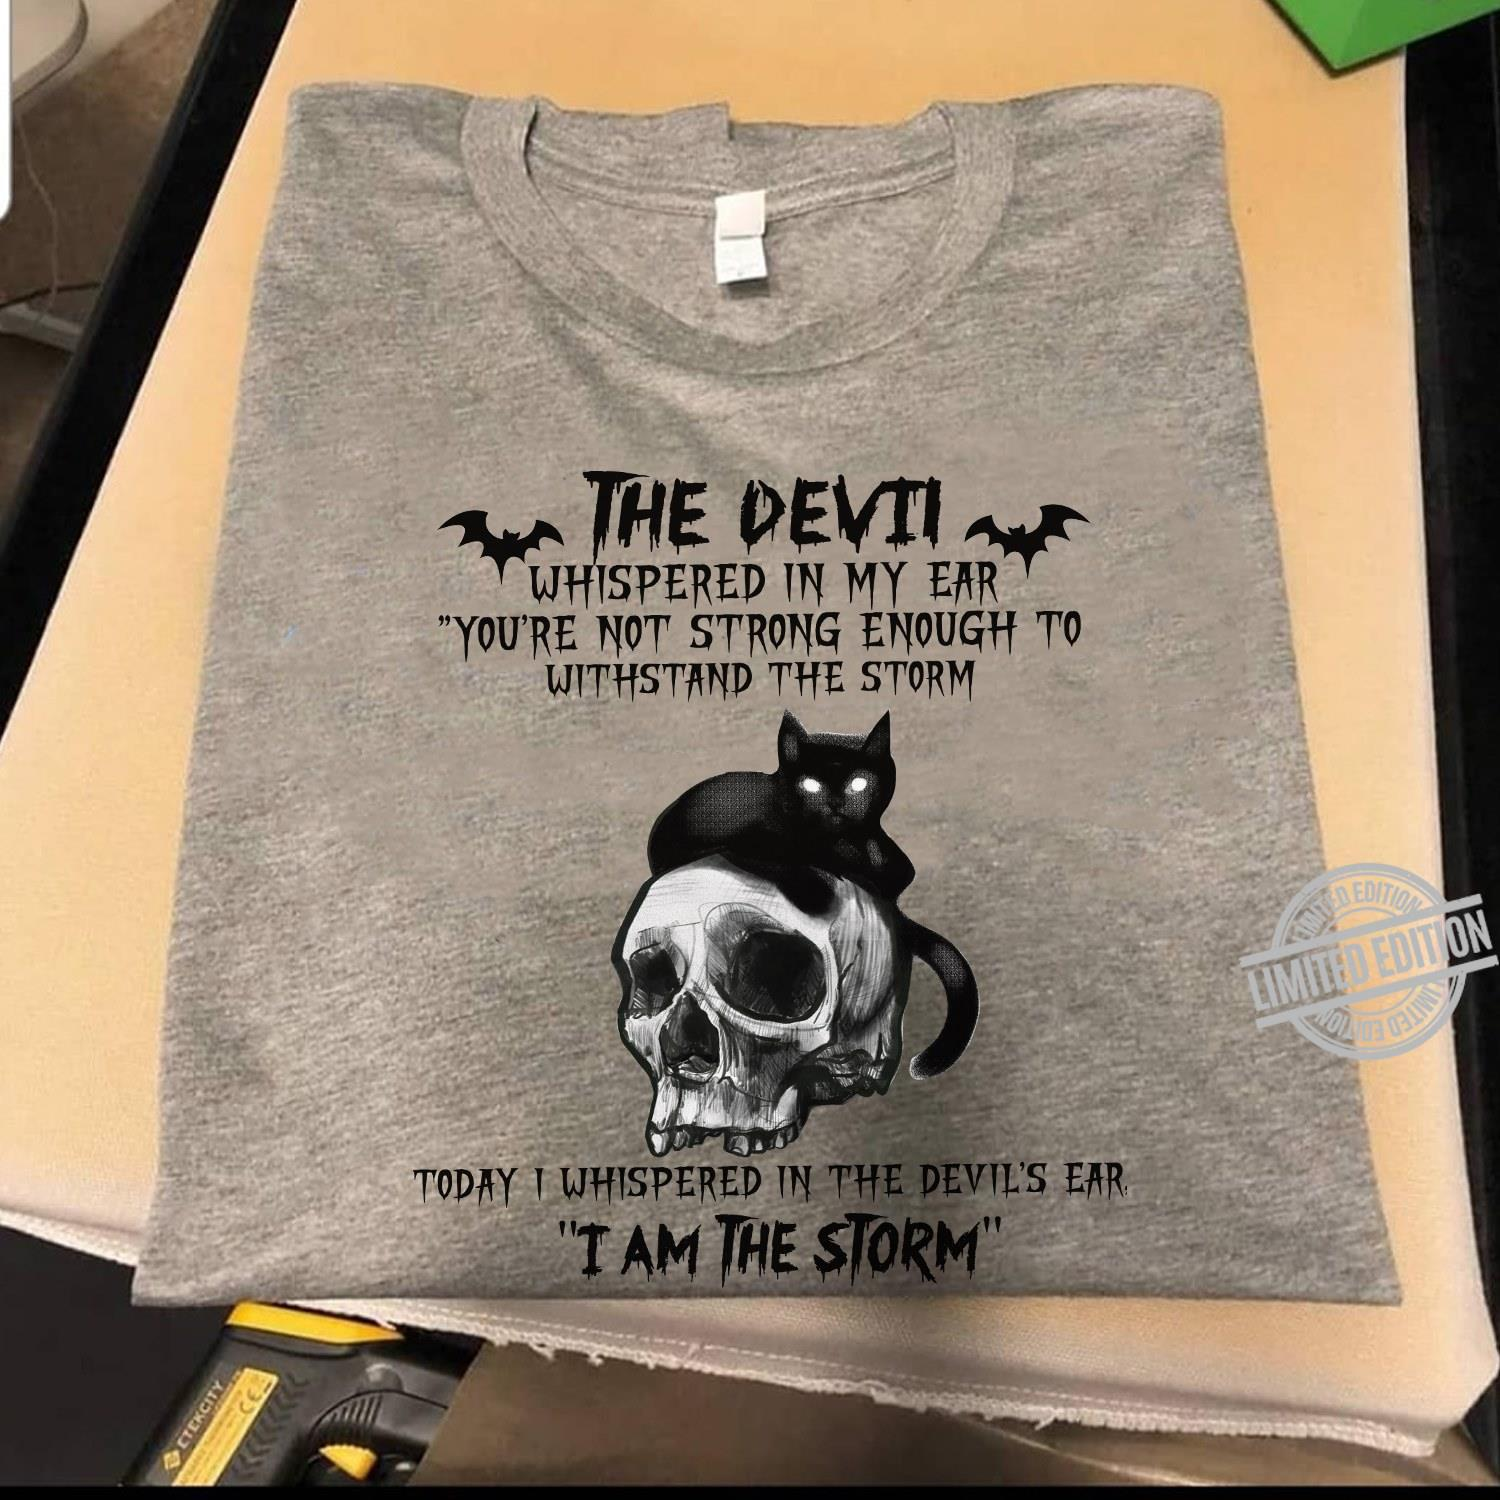 The Devil Whispered In My Ear You're Not Strong Enough To Withstand The Storm Today I Whispered In The Devil's Ear I Am The Storm Shirt